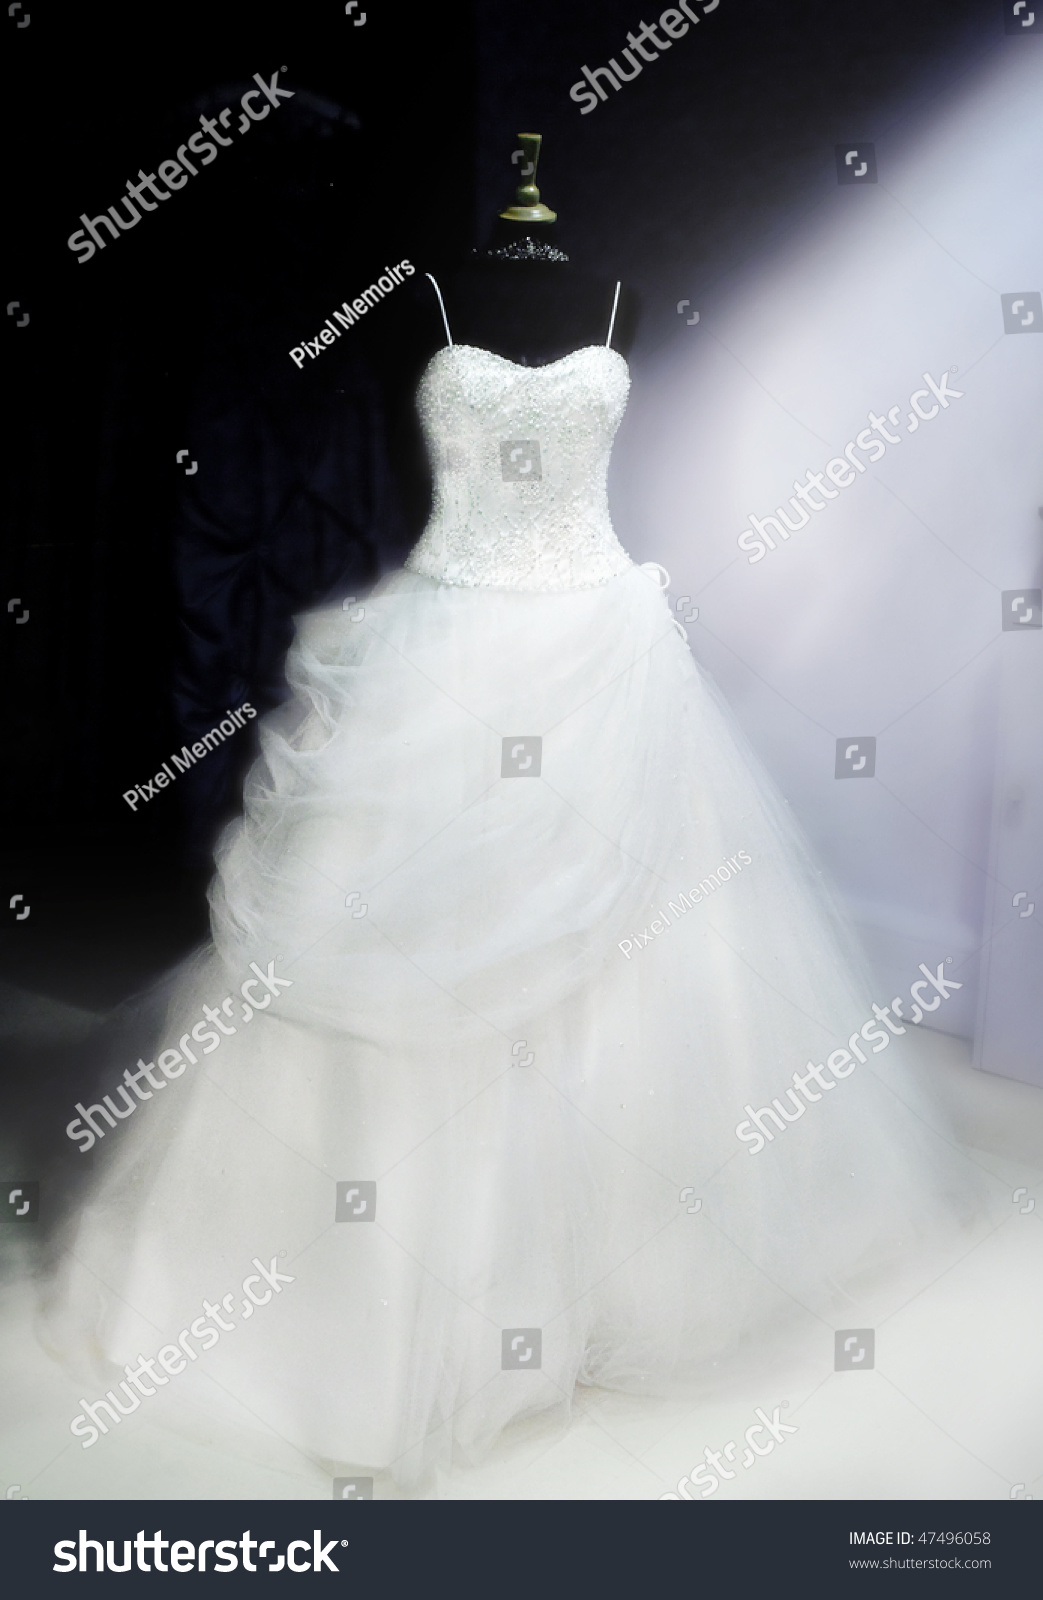 Beautiful Wedding Dress On Display Stand Stock Photo 47496058 ...